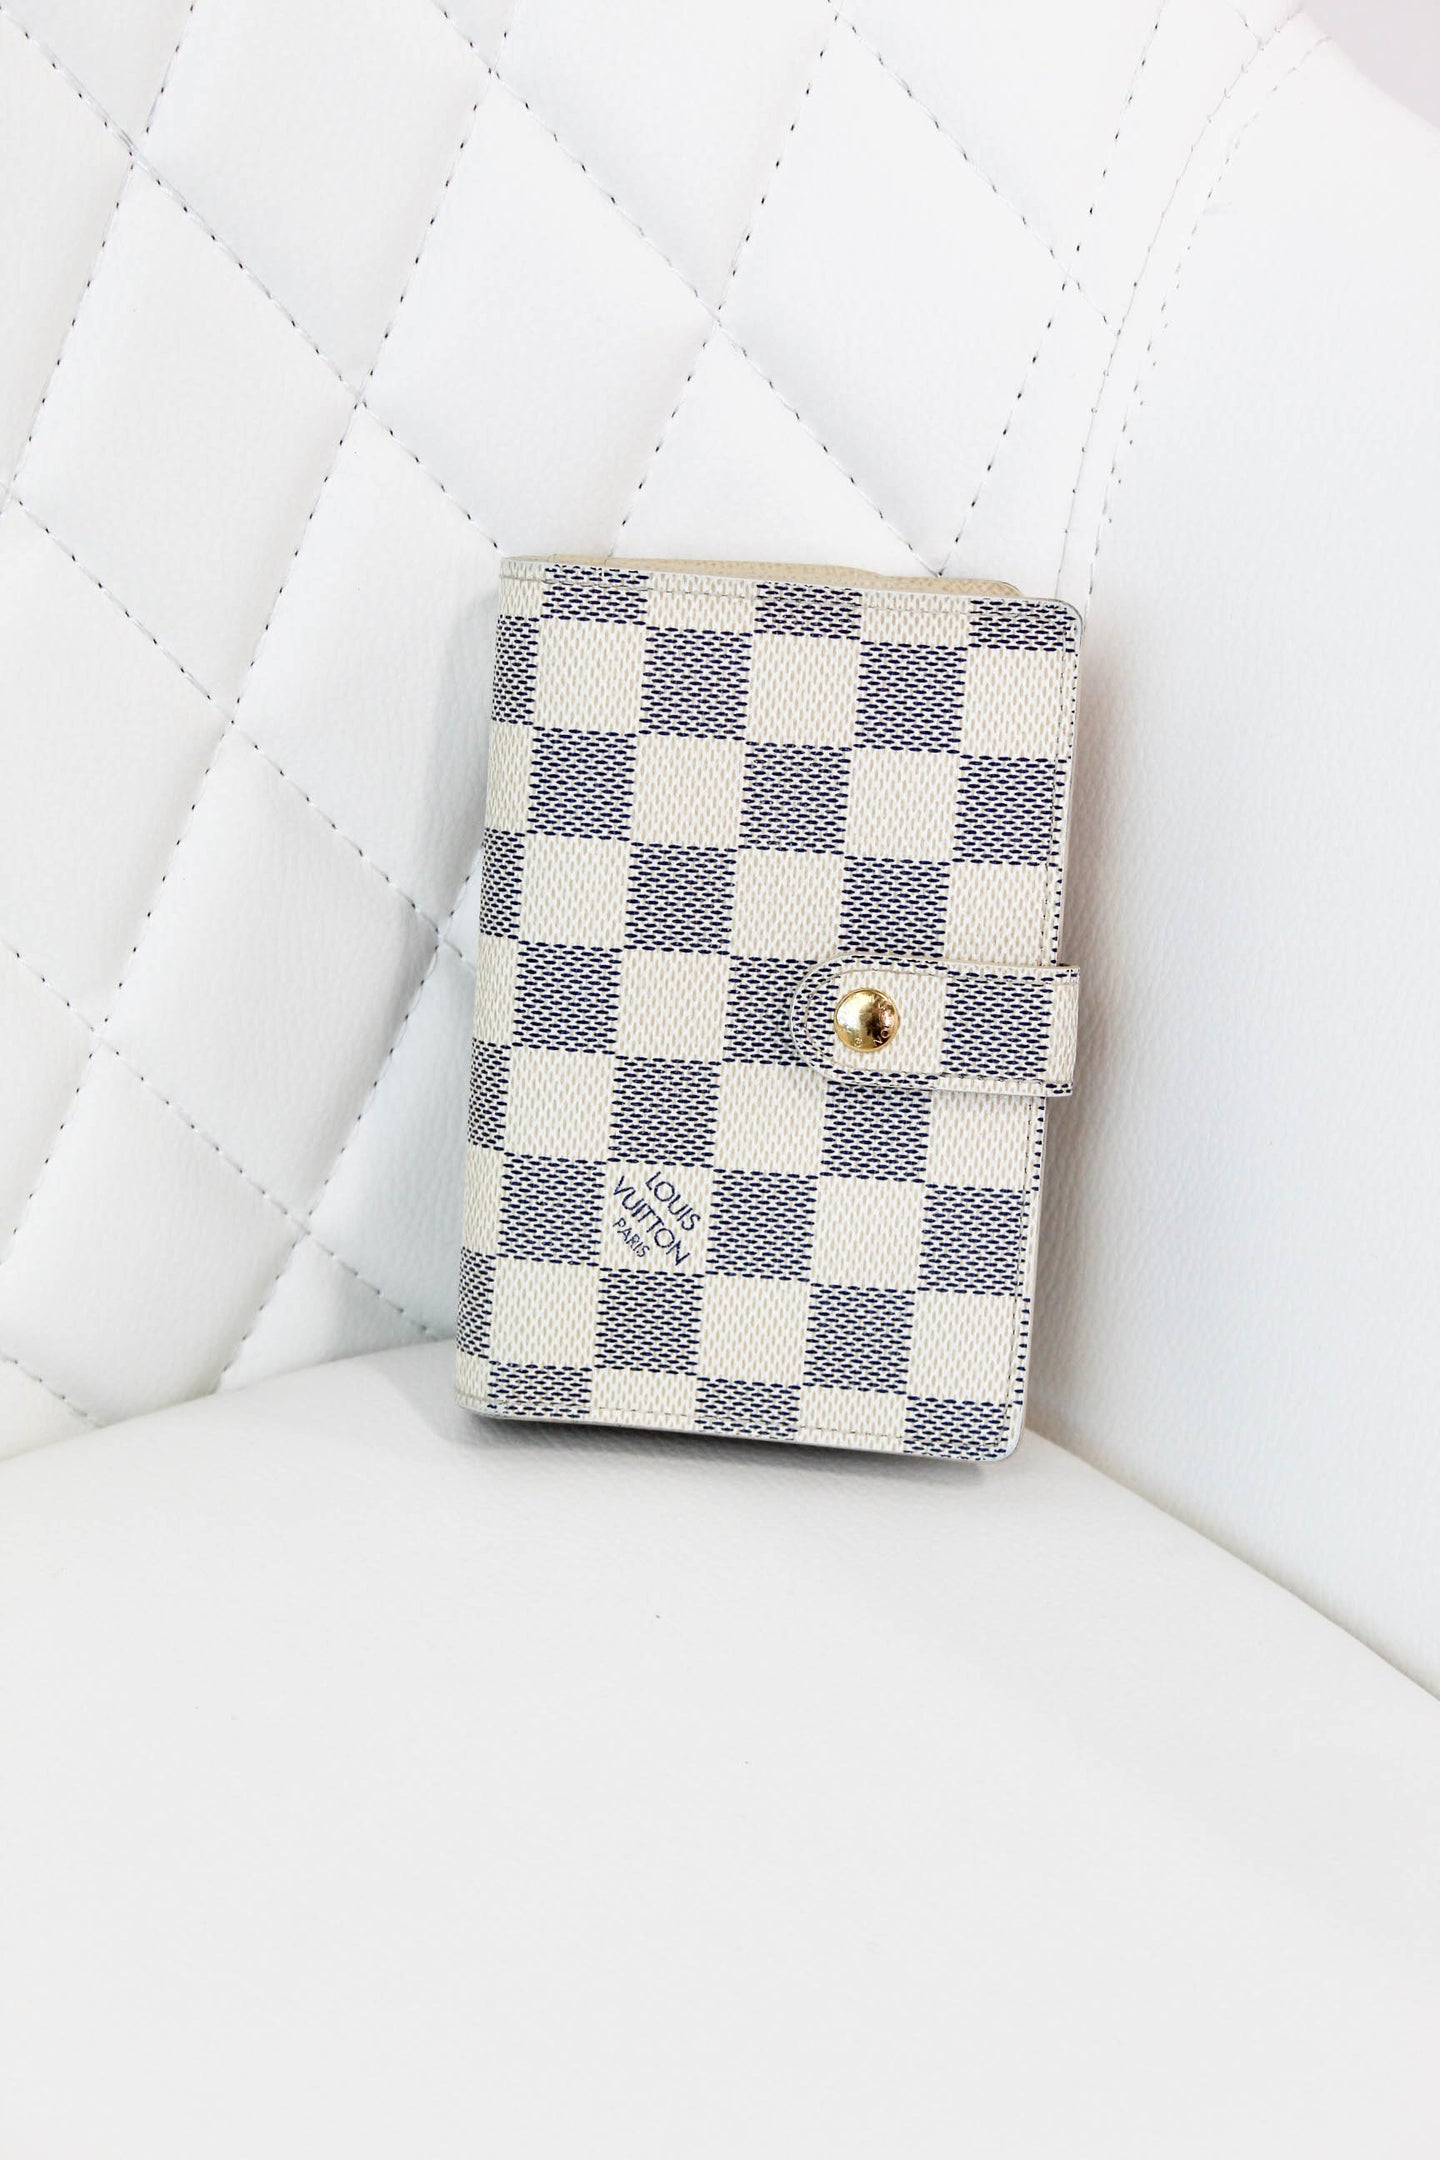 Louis Vuitton Damier Azur French Wallet